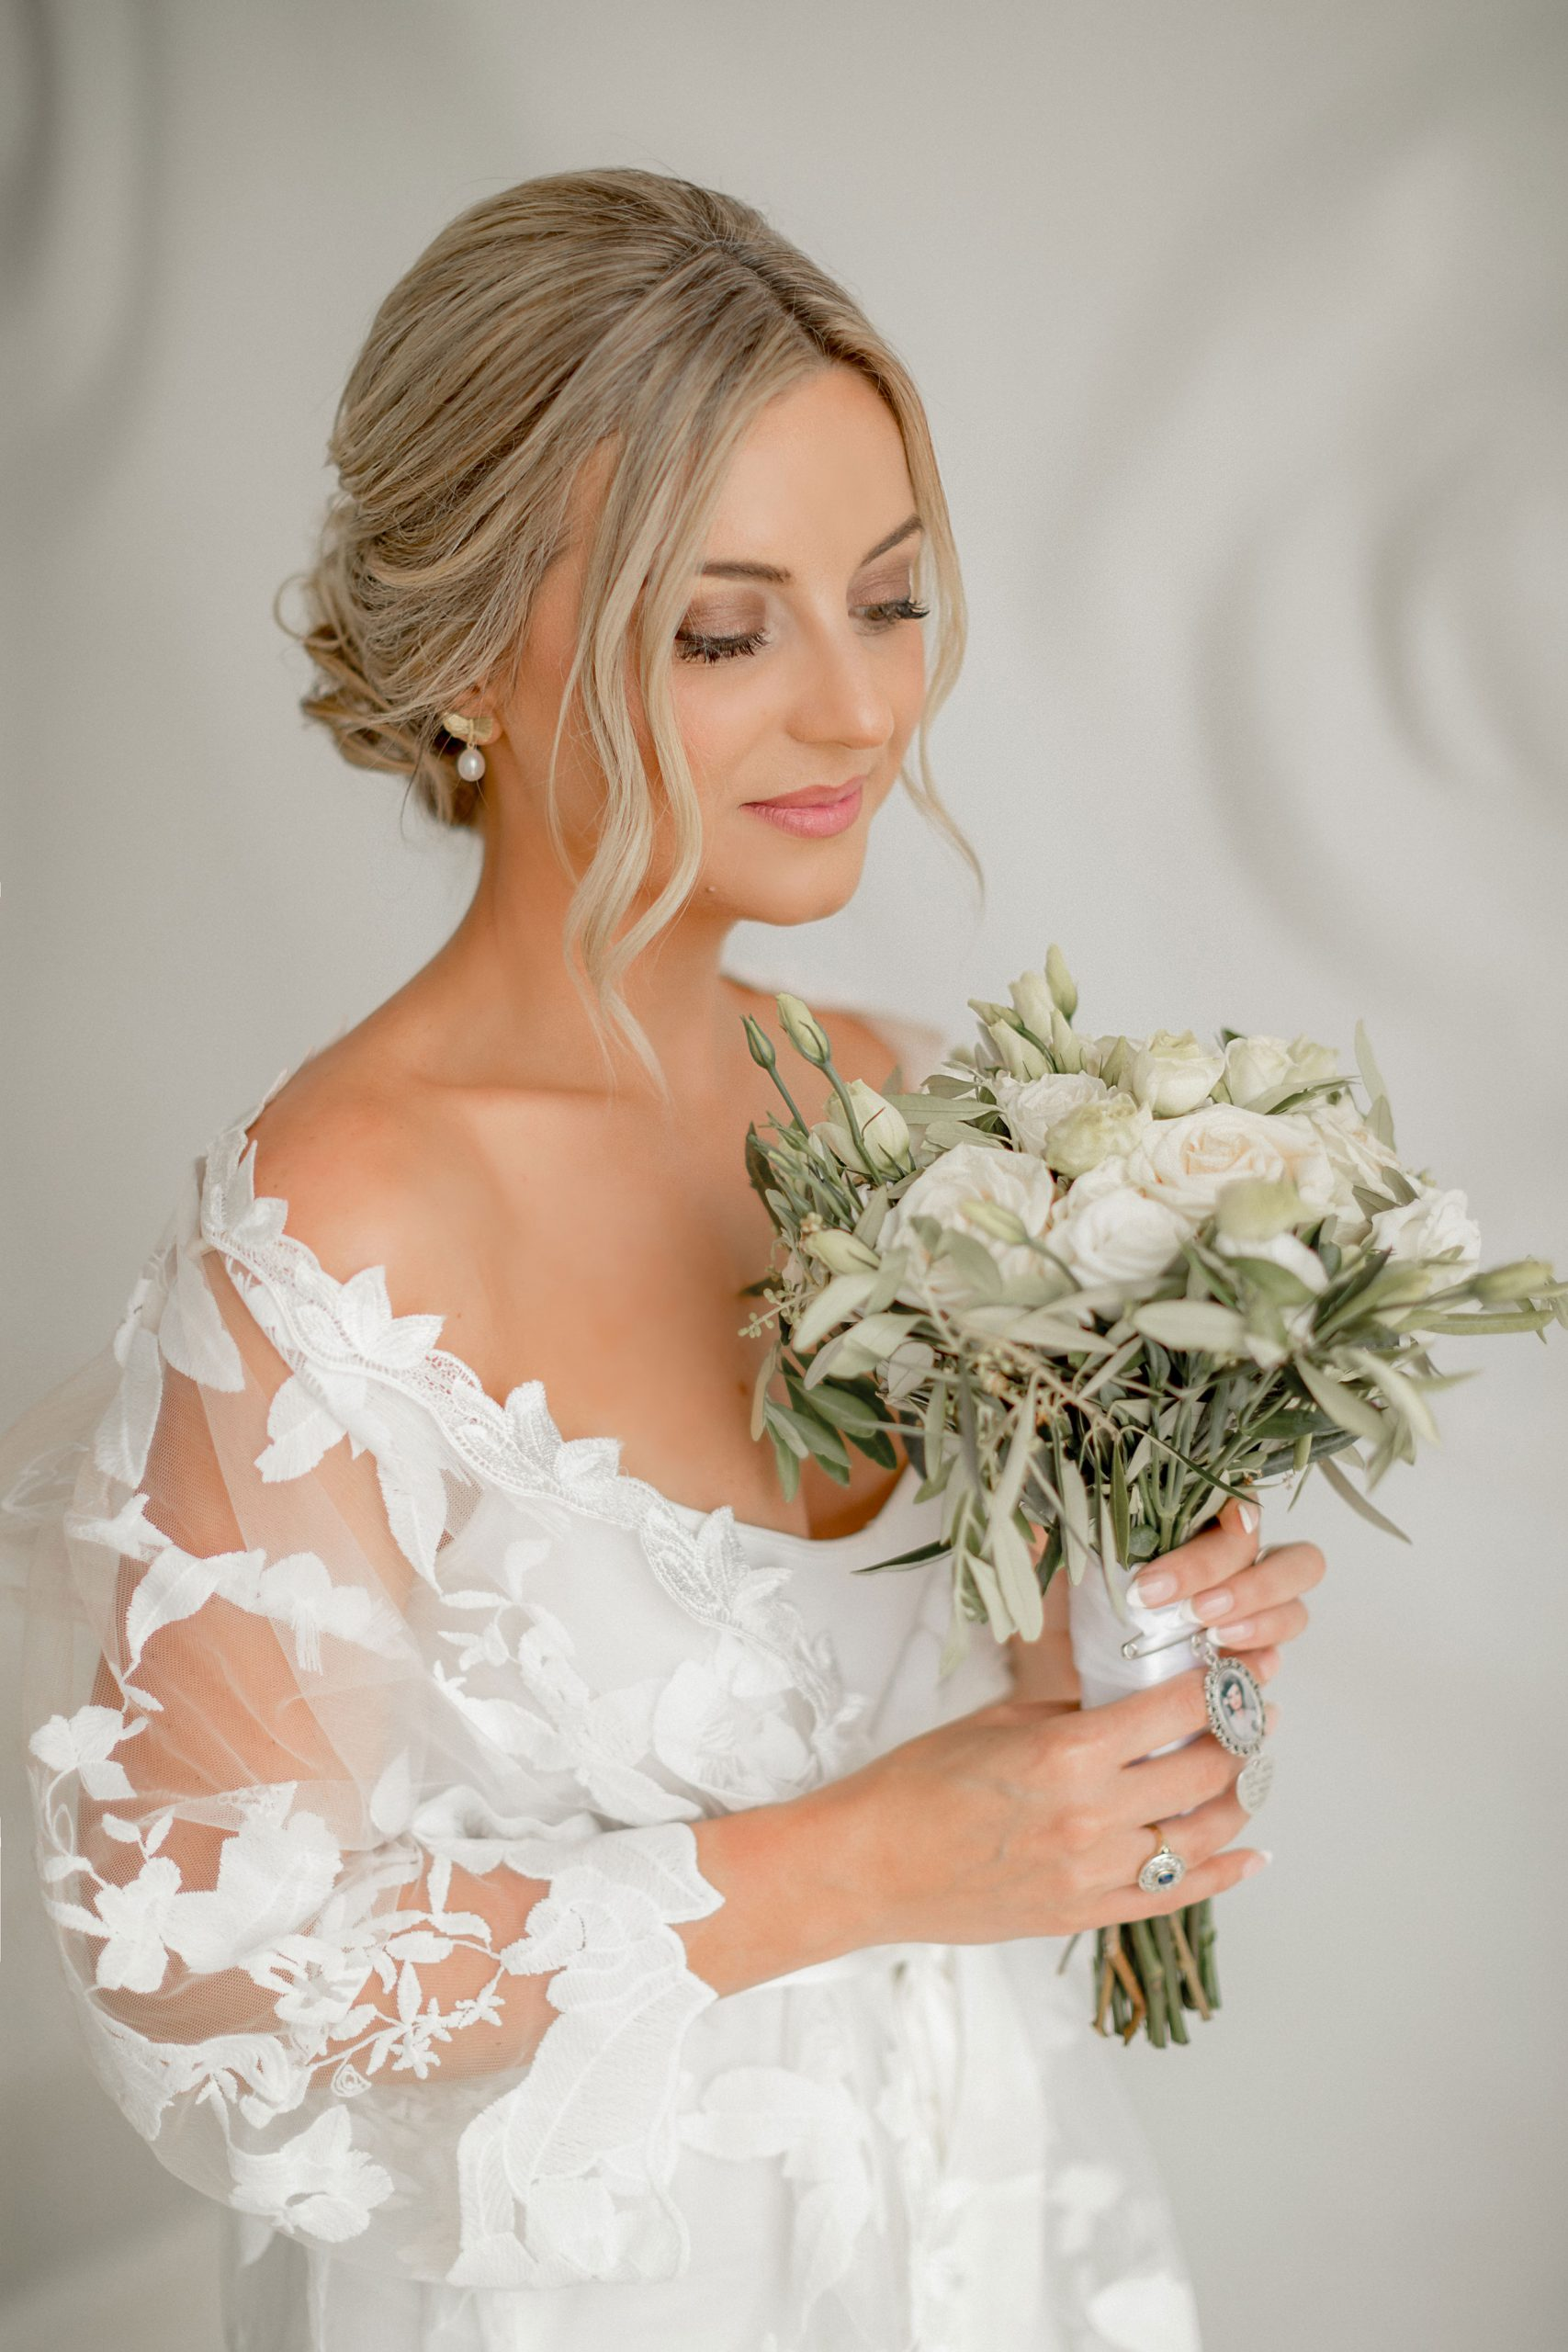 The bride with her bouquet of flowers